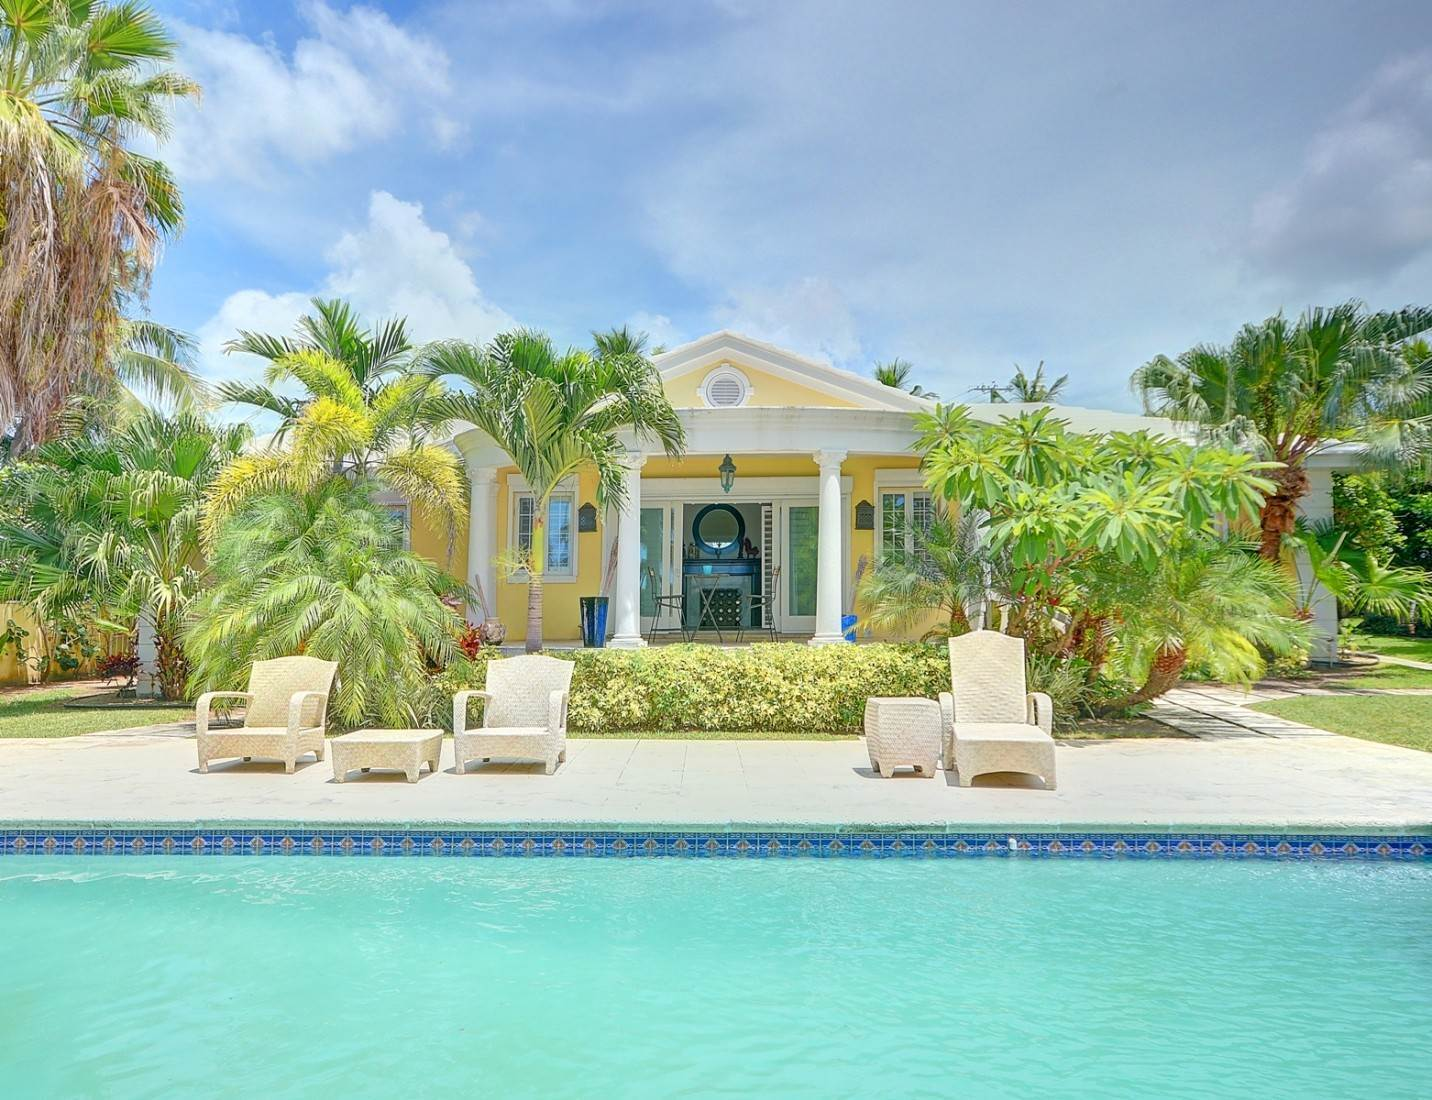 Single Family Homes for Rent at Lovely Ocean View Home near Baha Mar Cable Beach, Nassau And Paradise Island, Bahamas